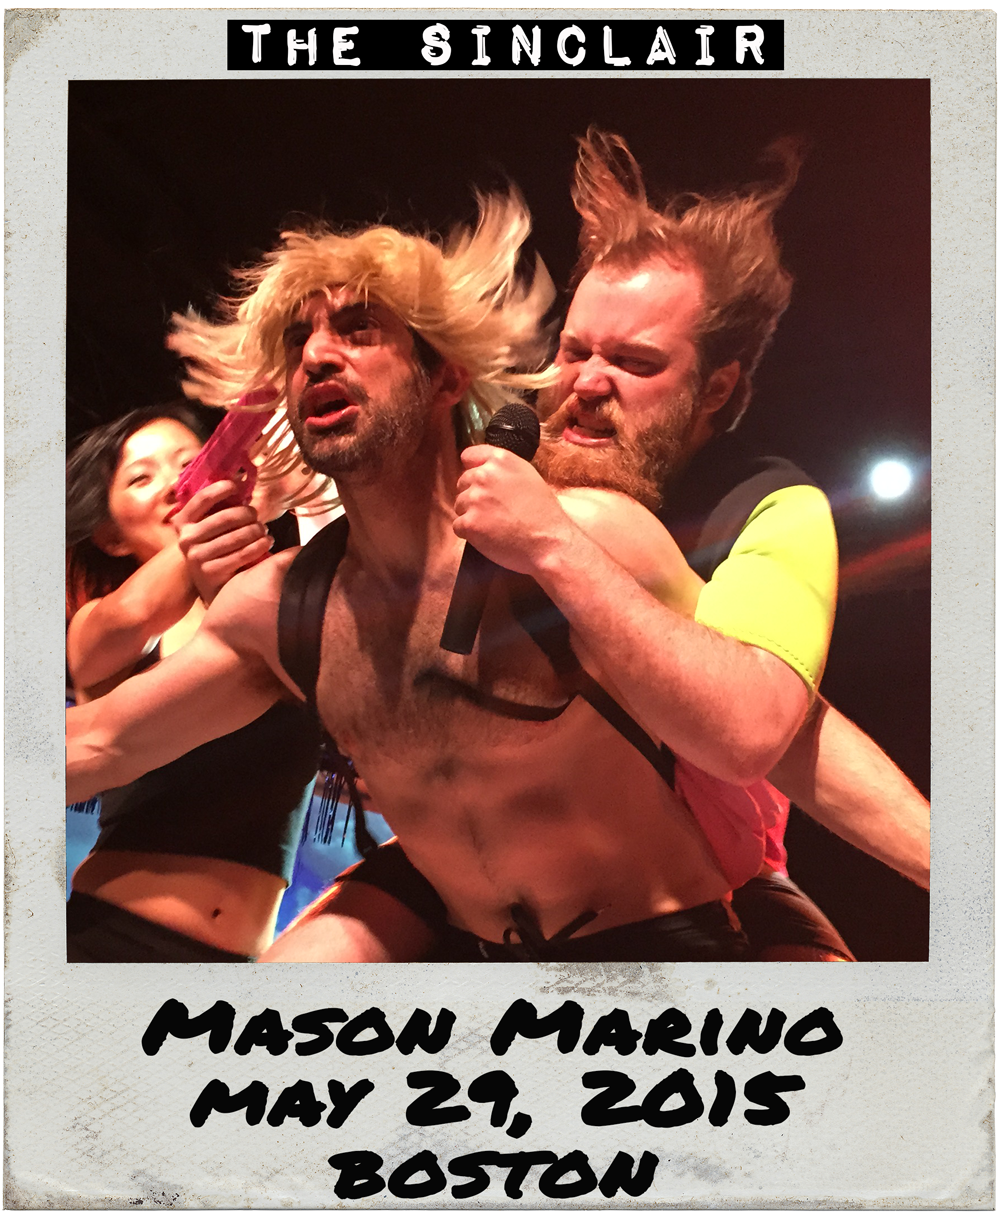 05_29_15_Mason-Marino_Boston.png